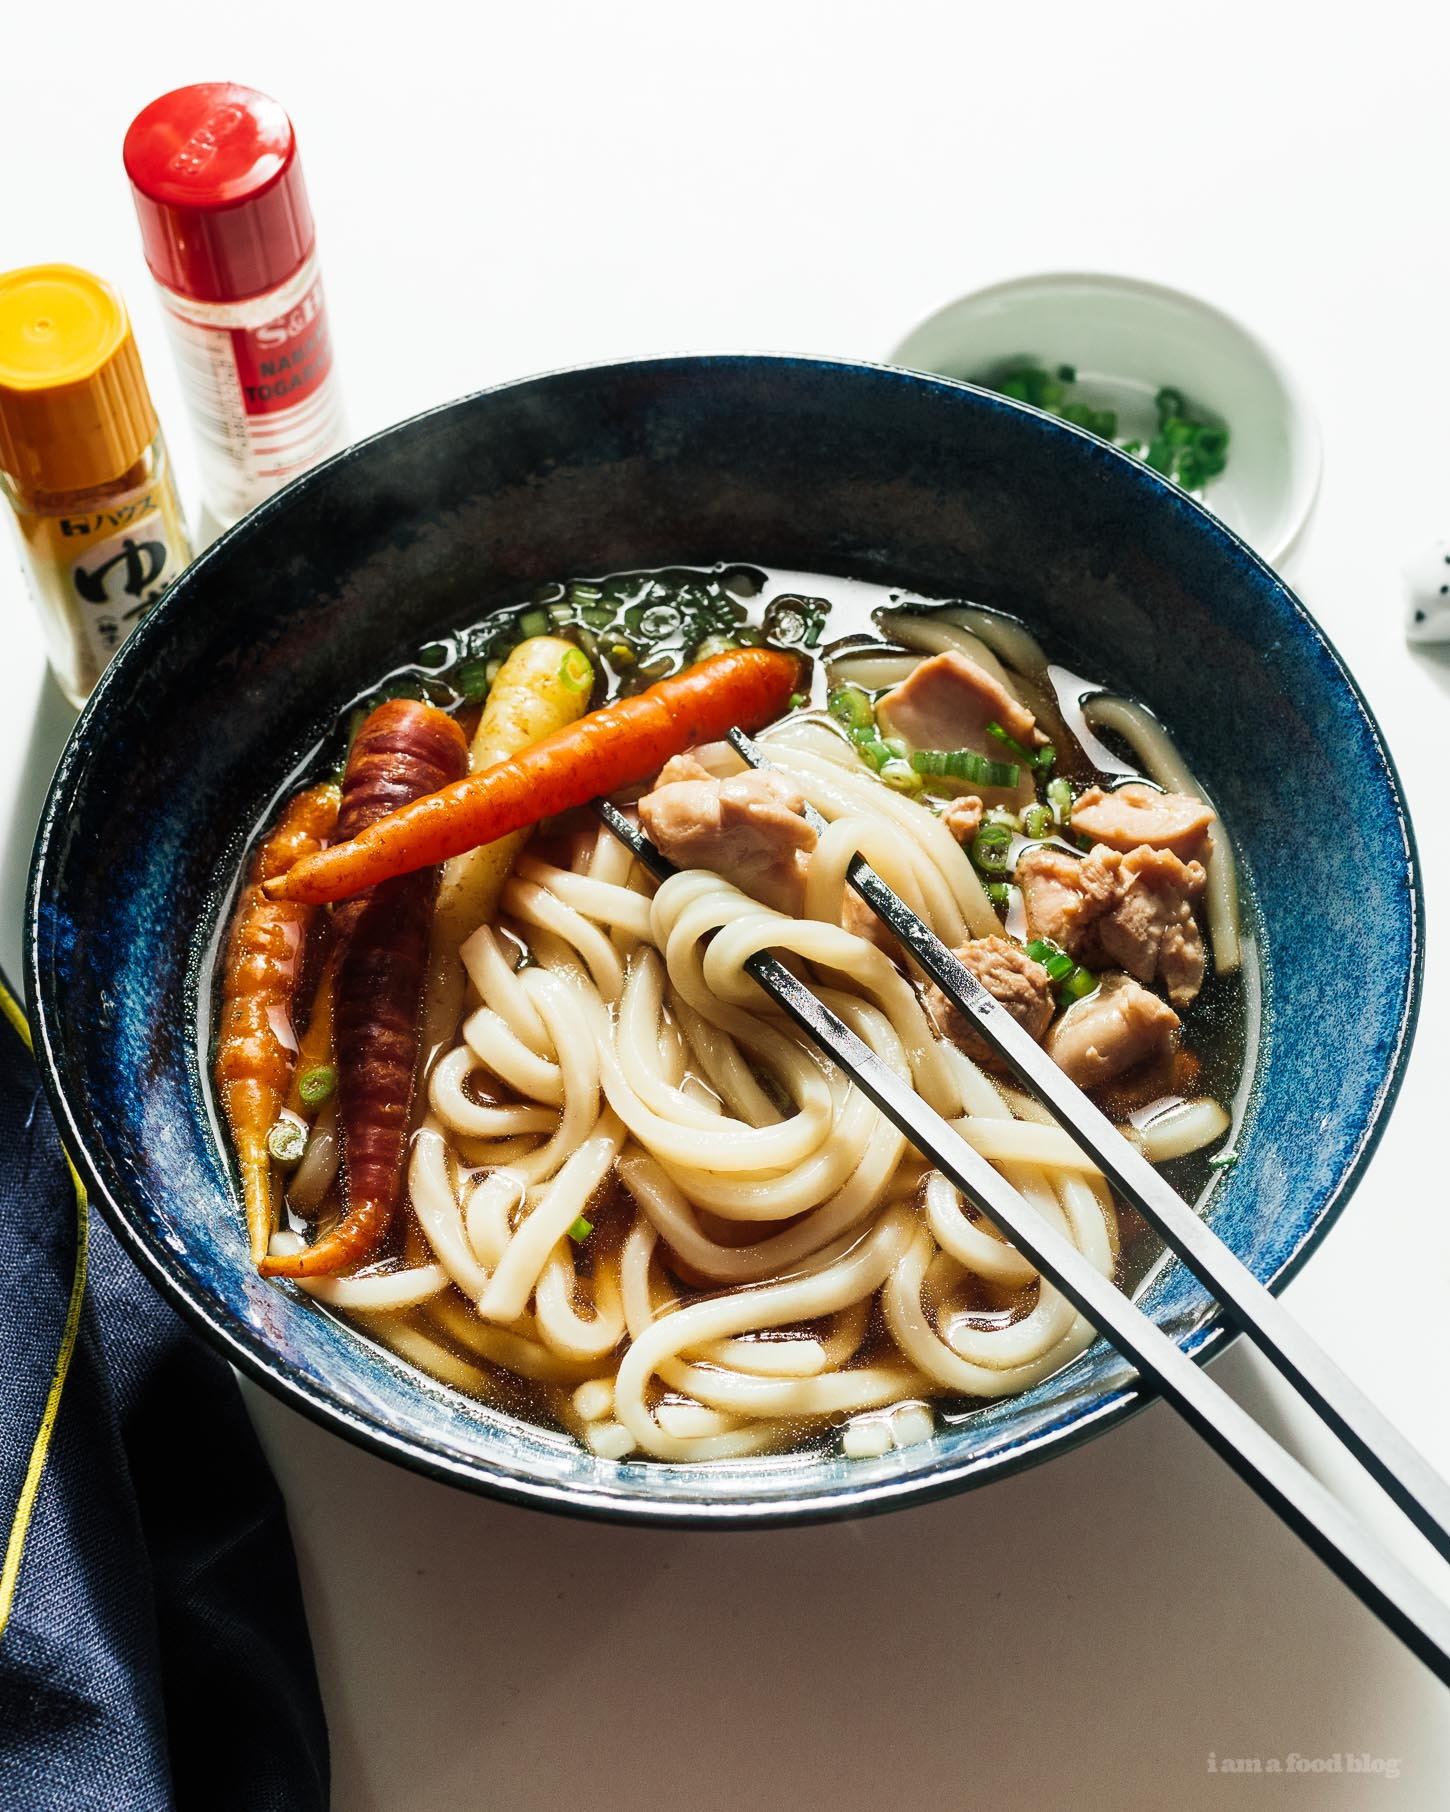 Easy and Fast Chicken Udon Recipe | www.iamafoodblog.com